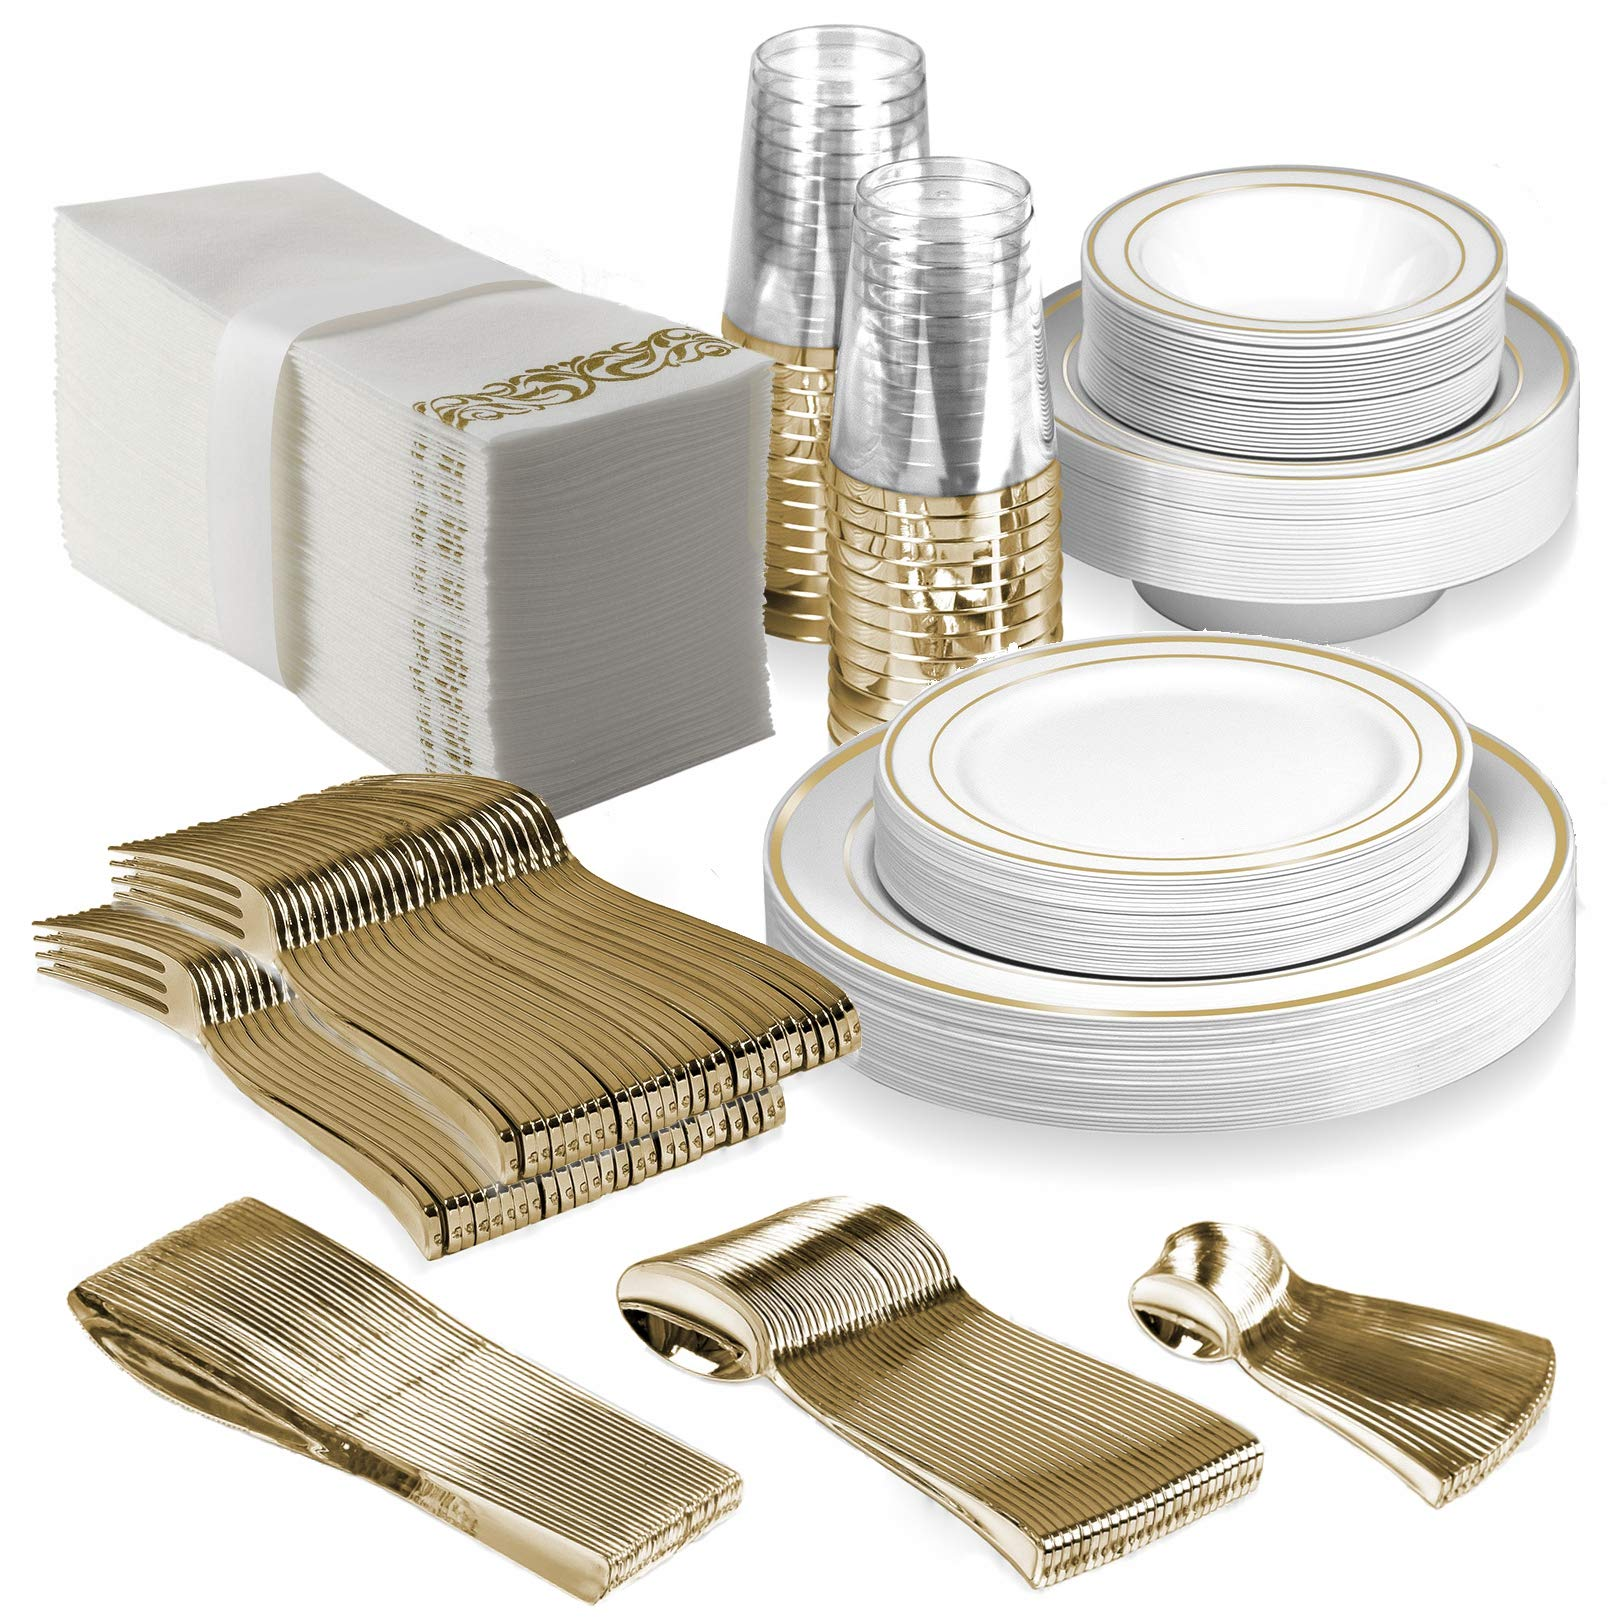 25 Guest Disposable Gold Dinnerware Set | Heavy Duty Plastic Plates, Cups, Silverware & Napkins. 50 Forks, 25 Spoons, 25 Dessert Spoons, 25 Knives, 25 Dinner Plates, 25 Dessert Plates, 25 Soup Bowls by BloominGoods